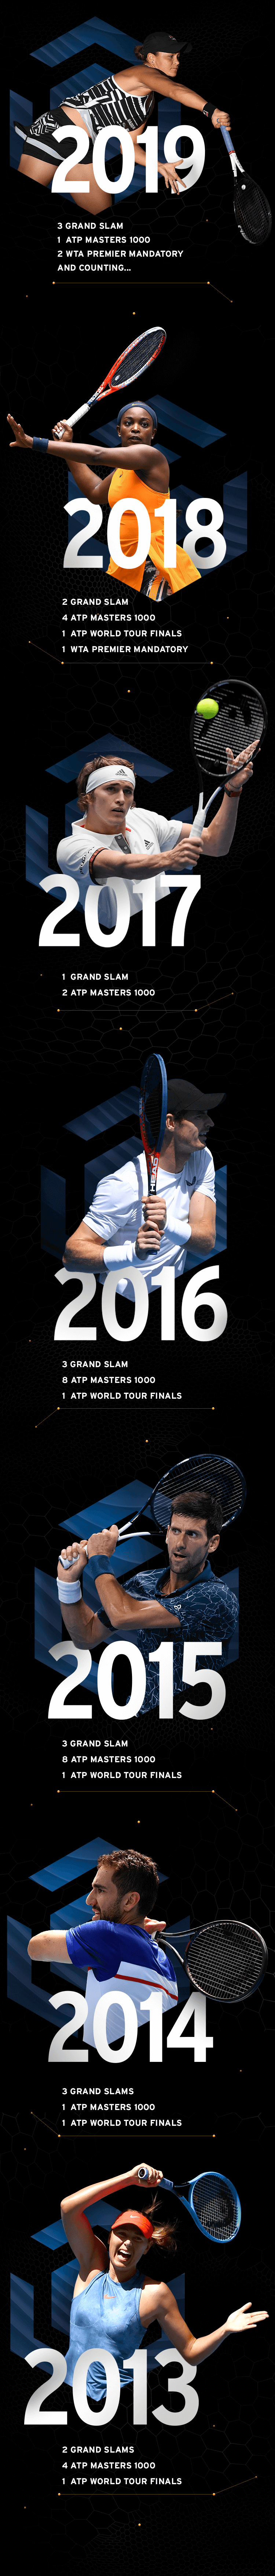 HEAD Tennis – Graphene 360+ winners